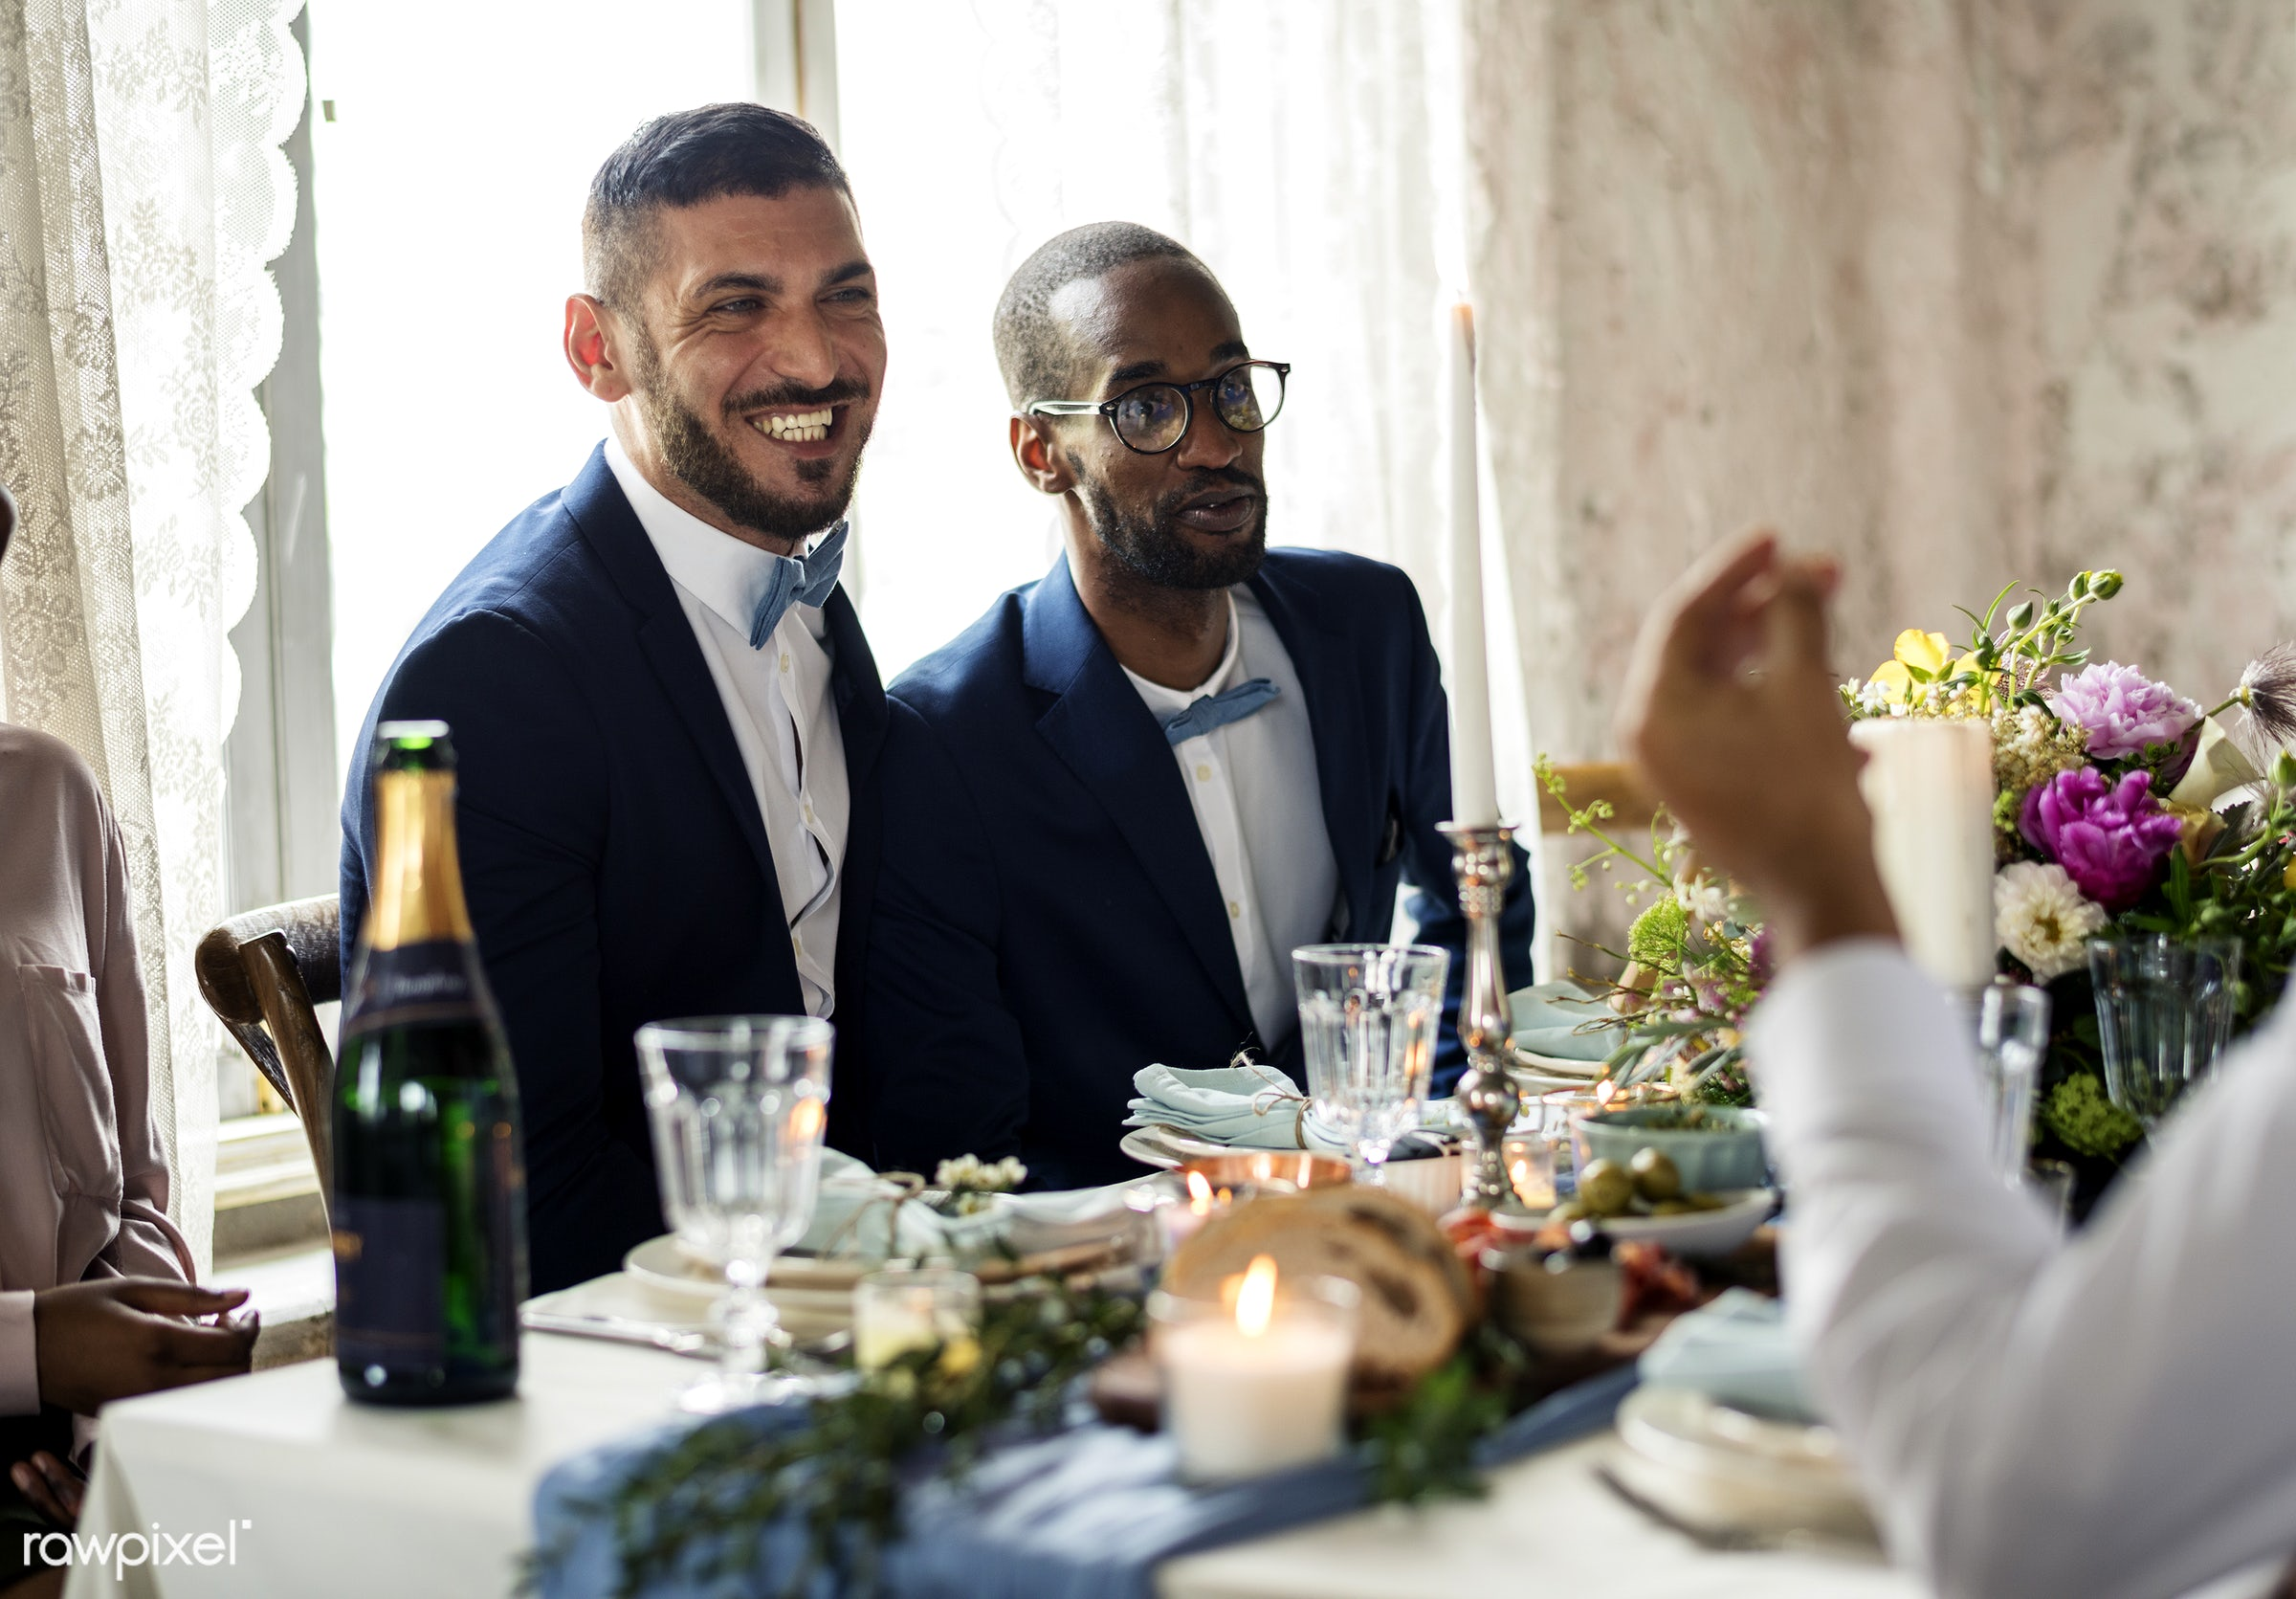 occasion, restaurant, caucasian, love, married, banquet, couple, men, cheerful, smiling, black, meal, diversity, african...